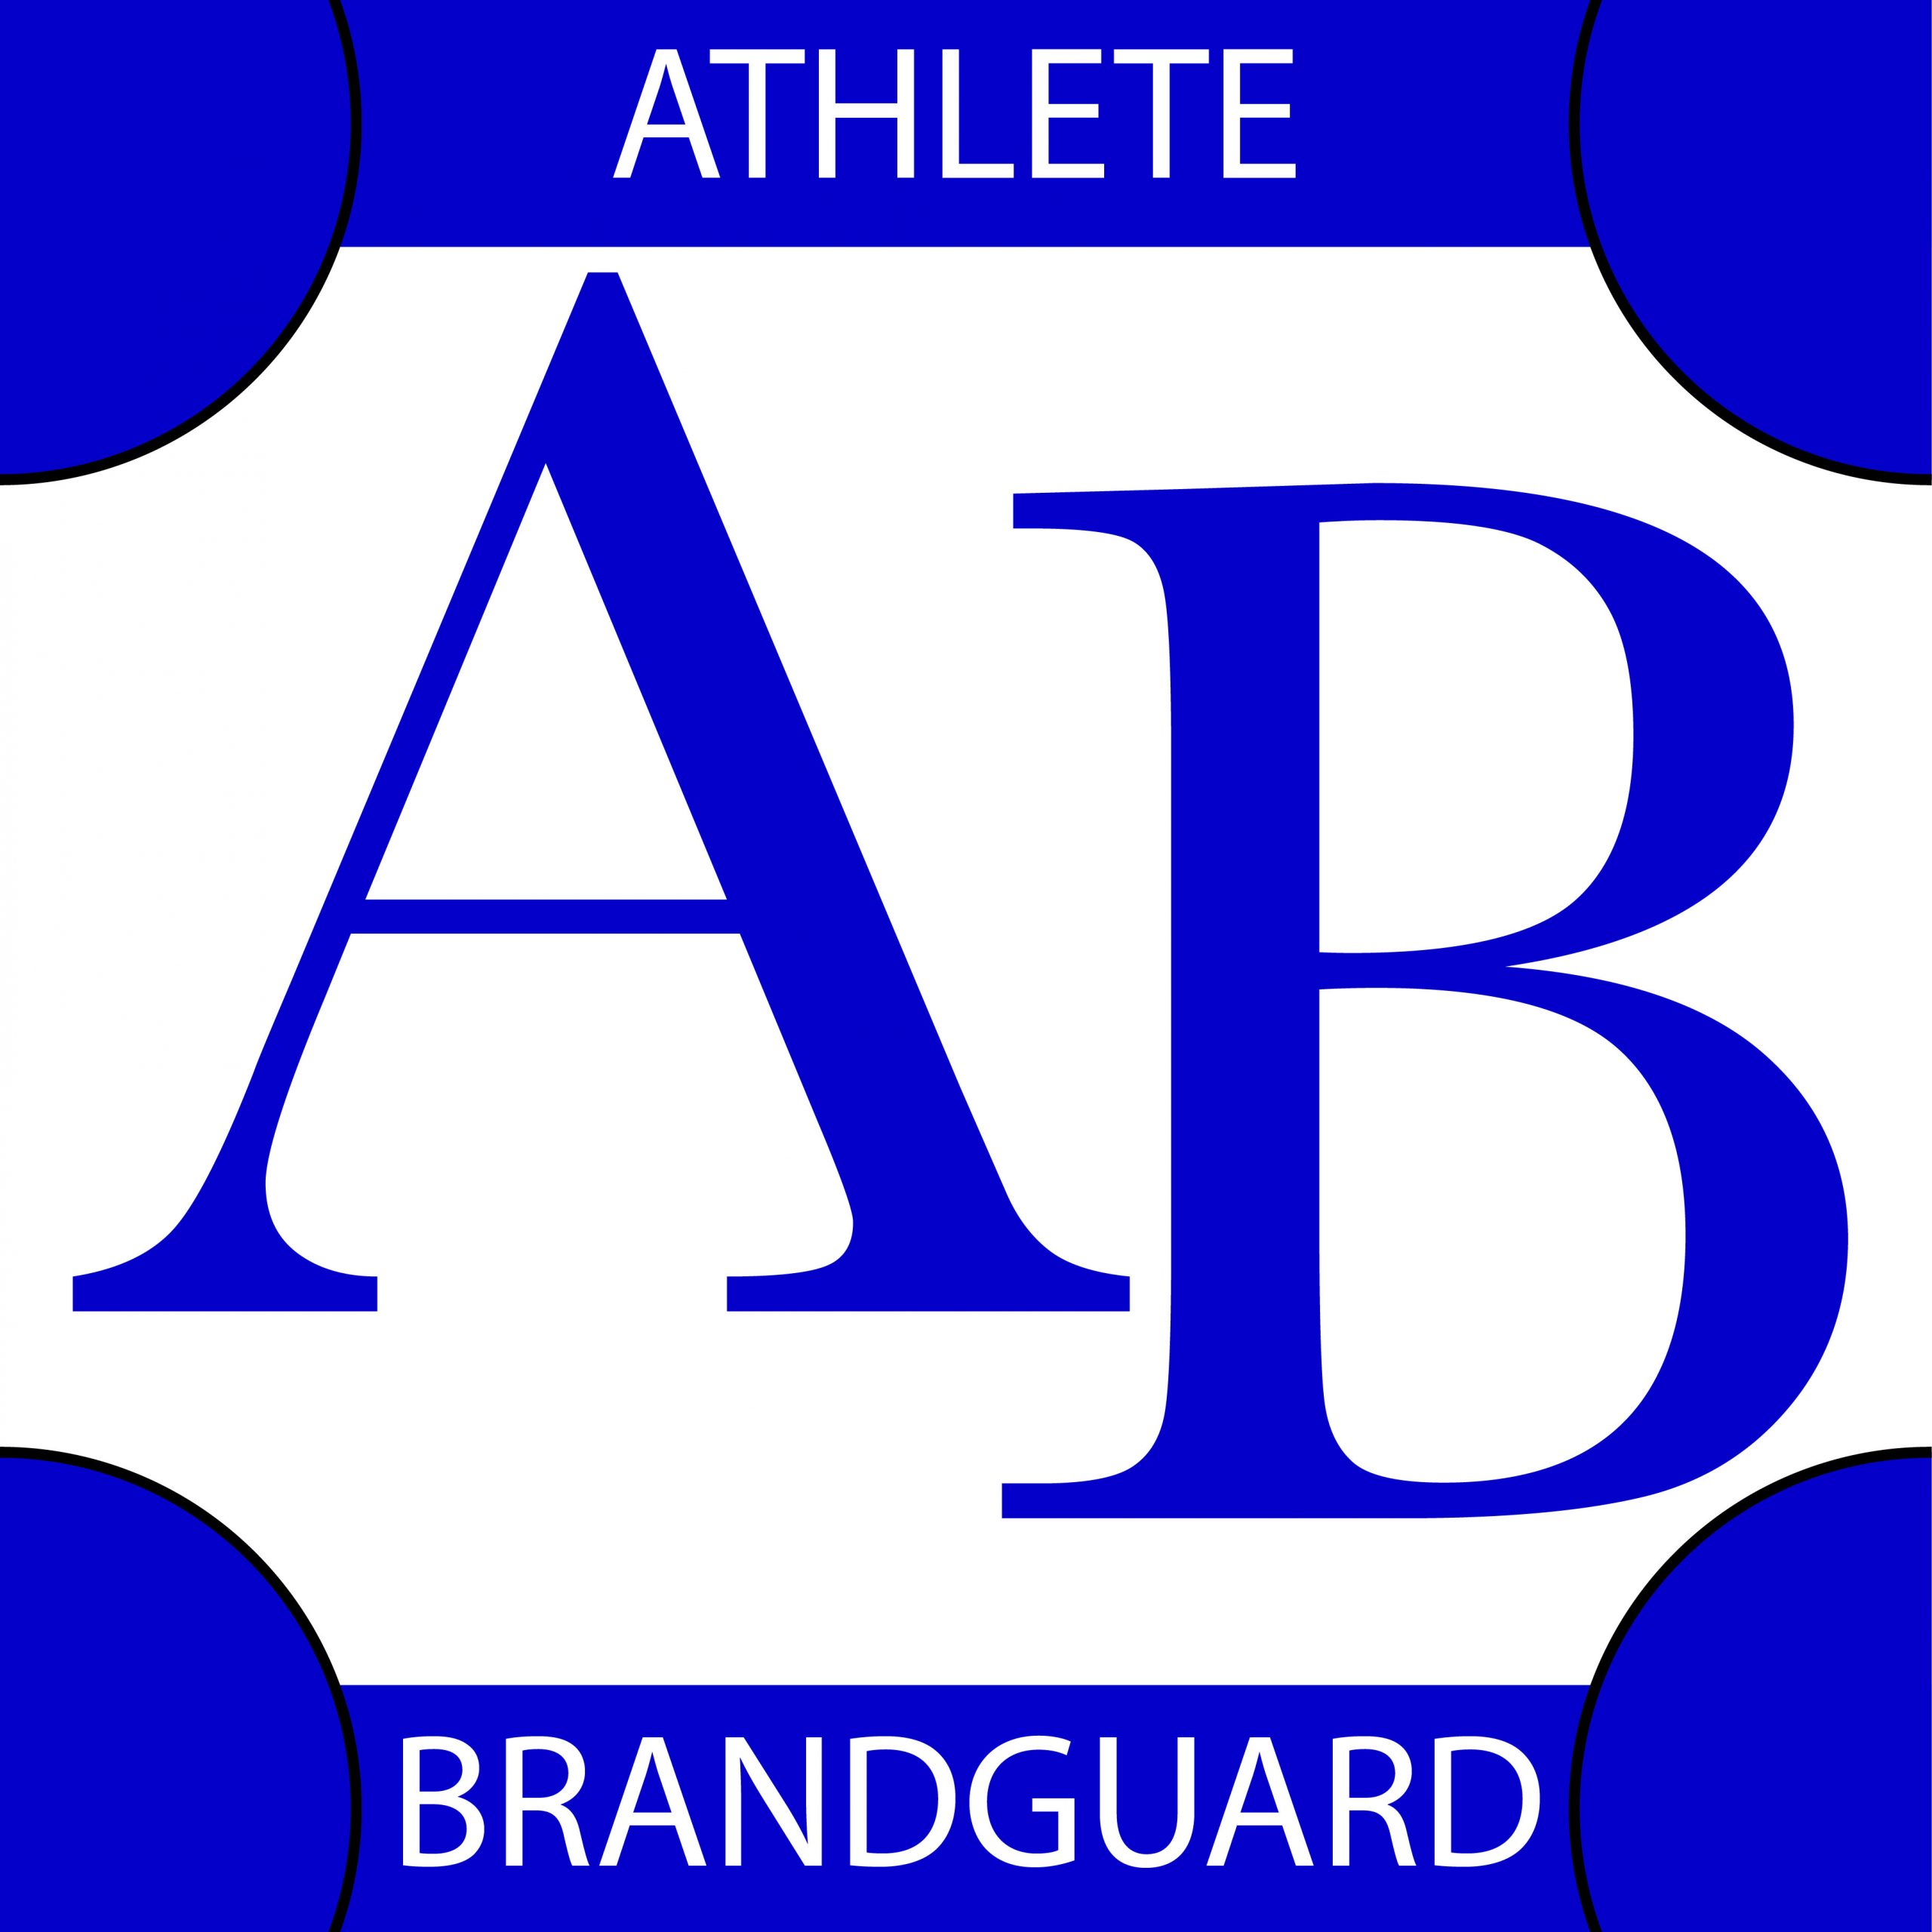 Athlete Brandguard: